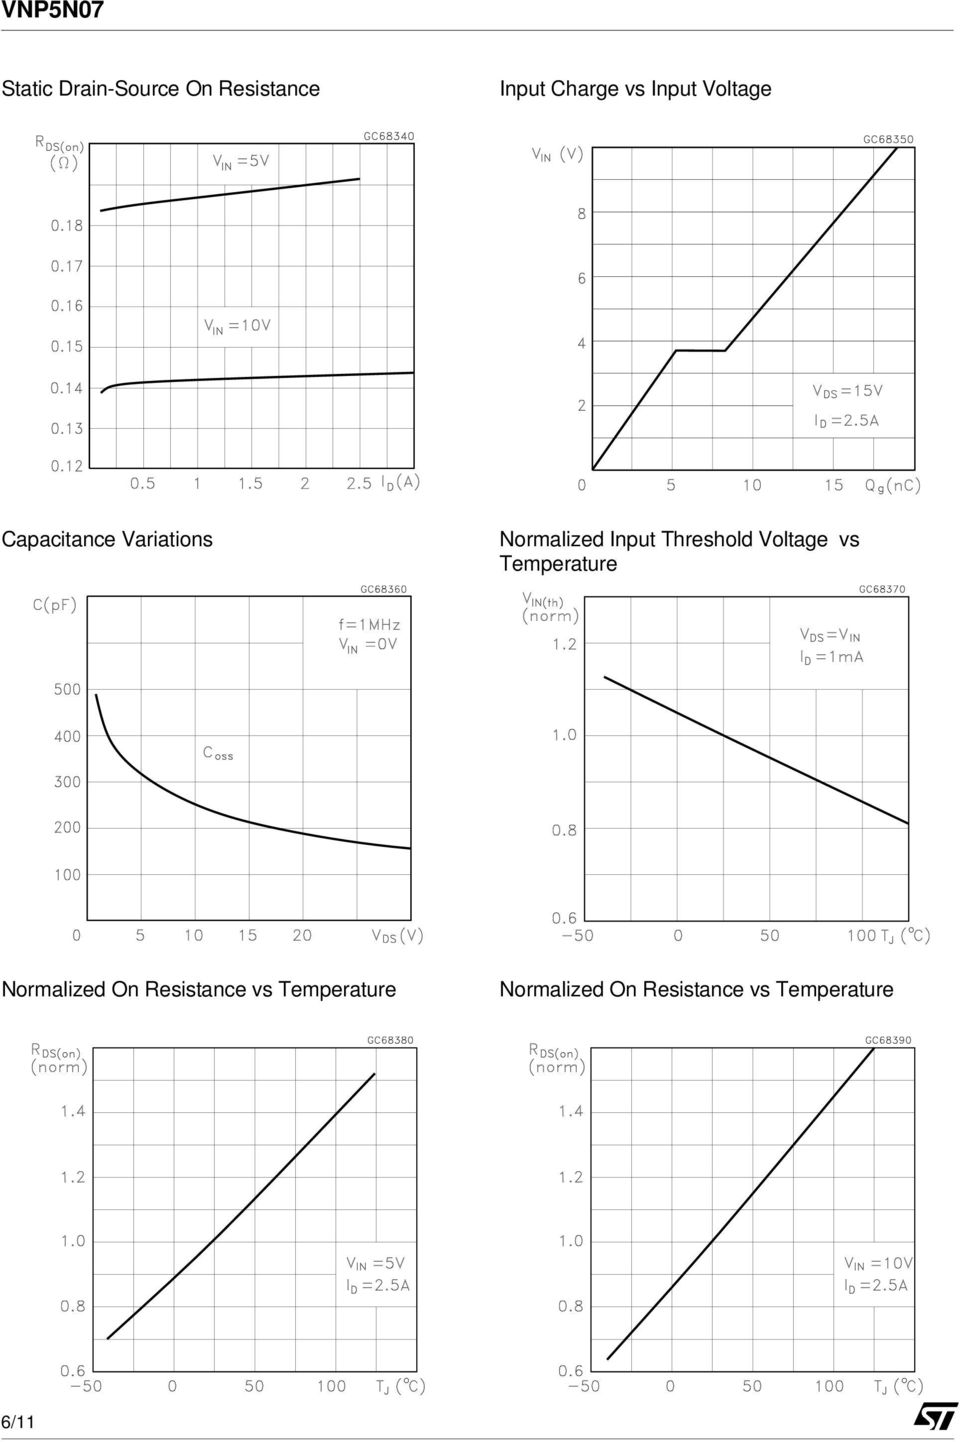 Threshold Voltage vs Temperature Normalized On